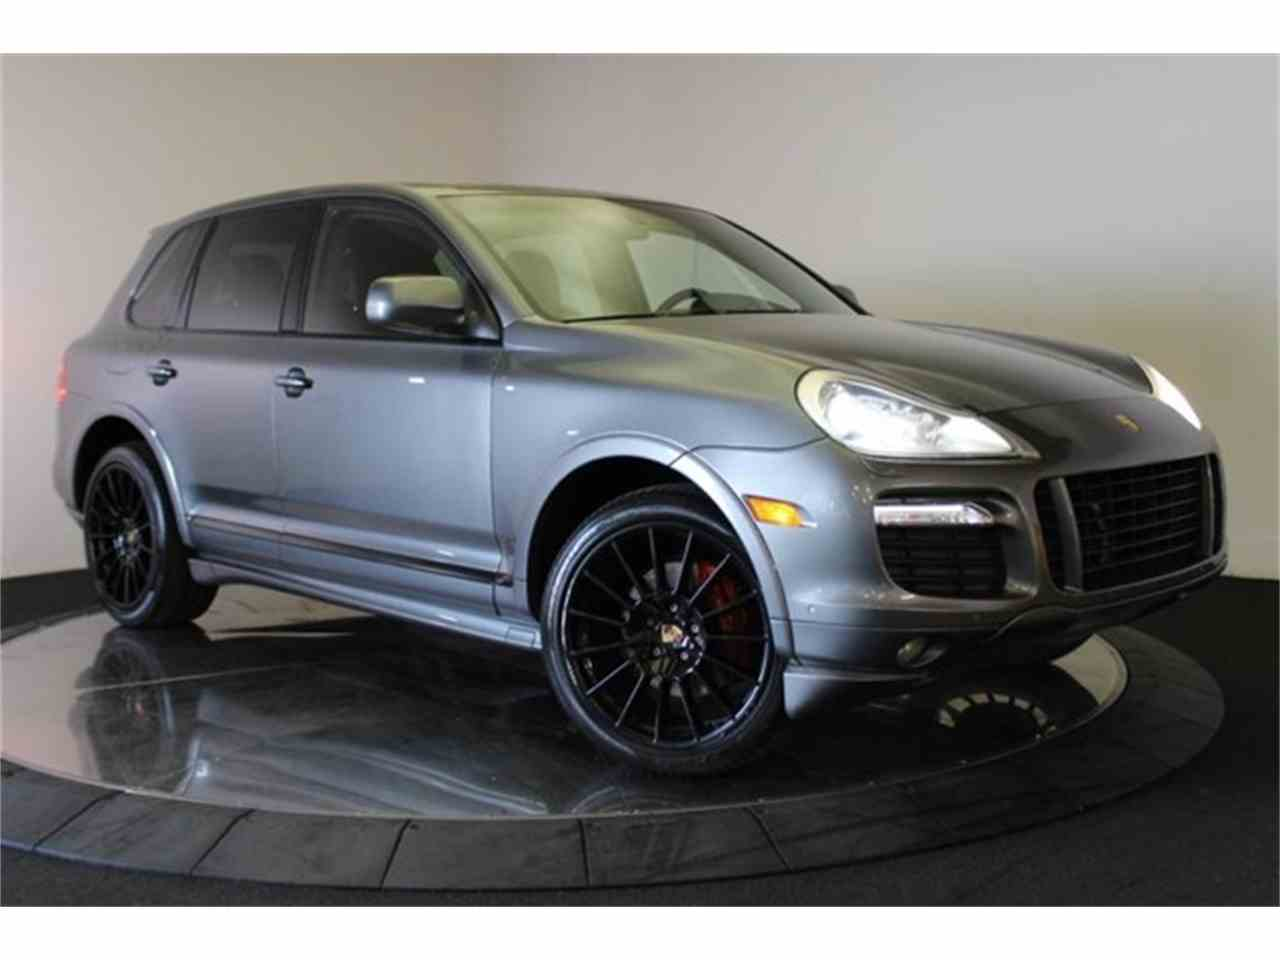 2008 Porsche Cayenne for Sale - CC-1021928